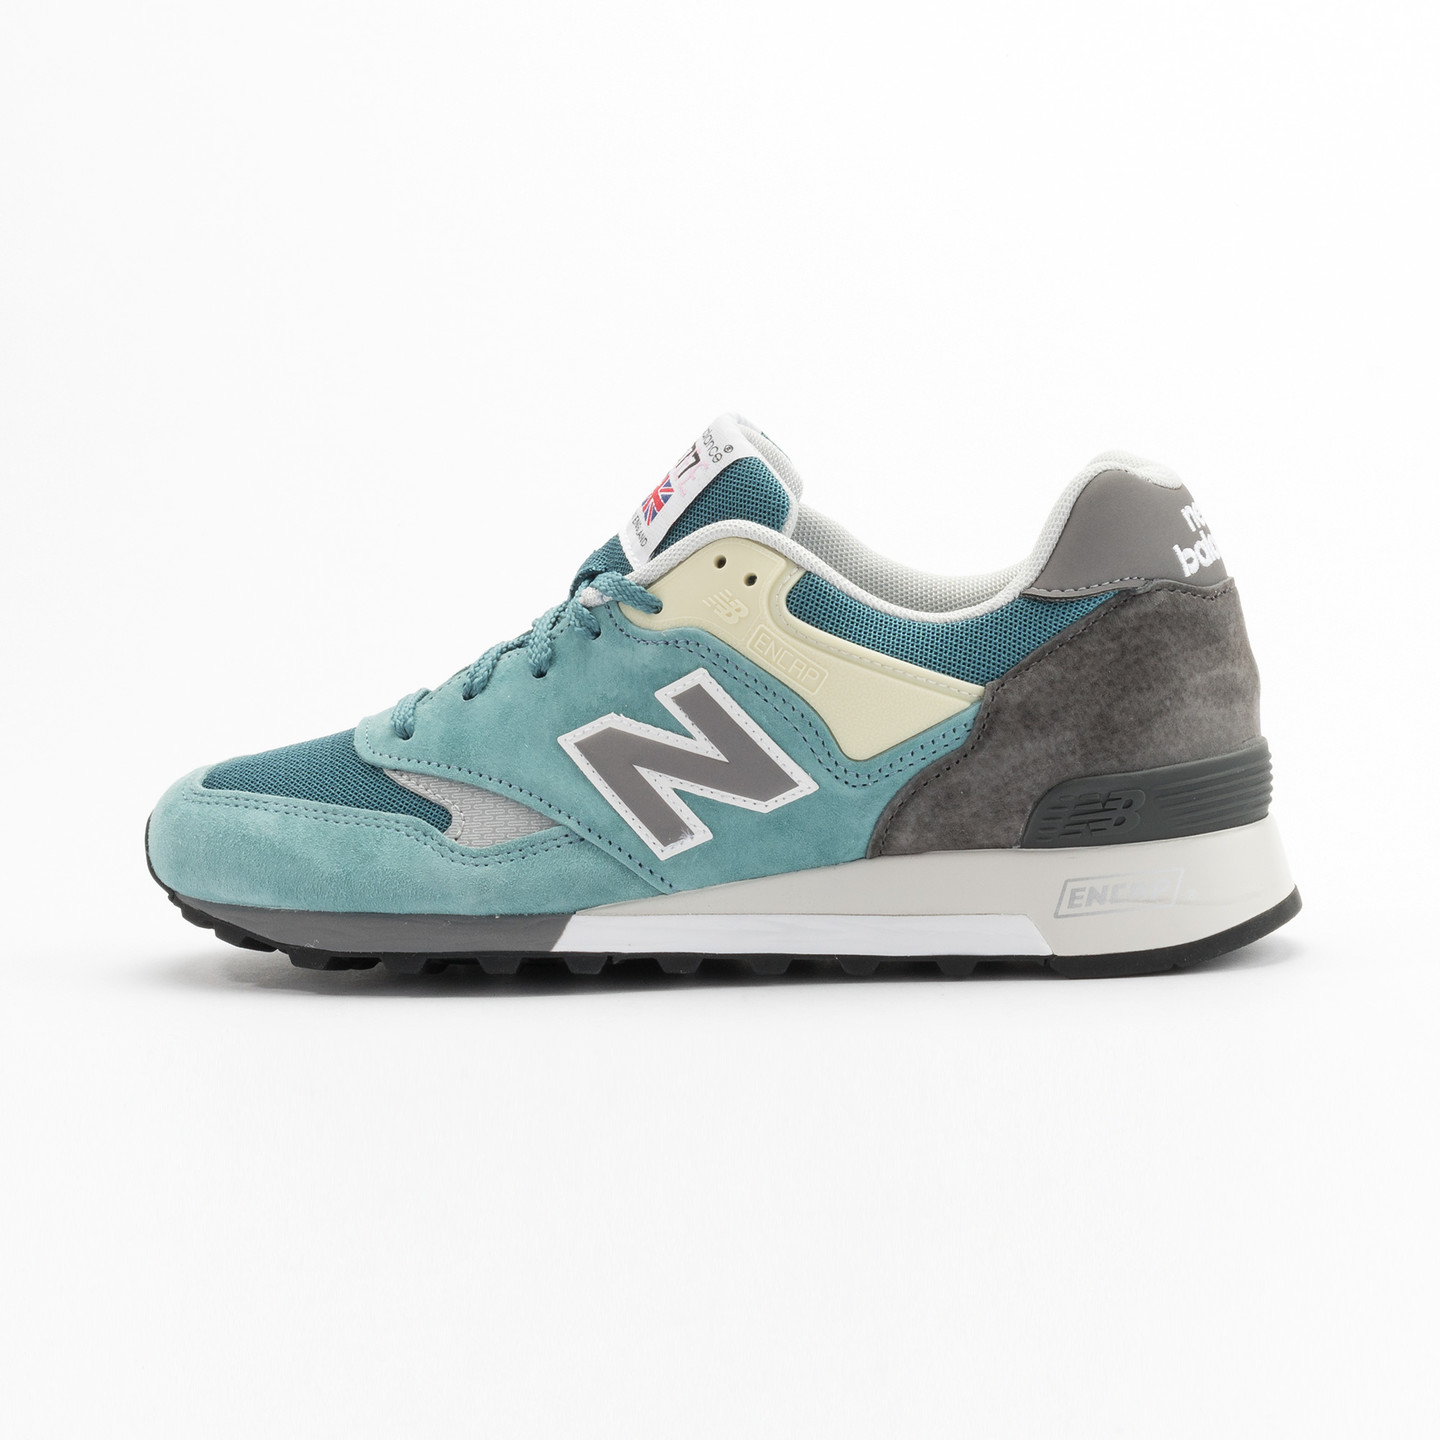 New Balance M577 ETB - Made in England Sea Glass / Grey/ Yellow M577ETB-45.5